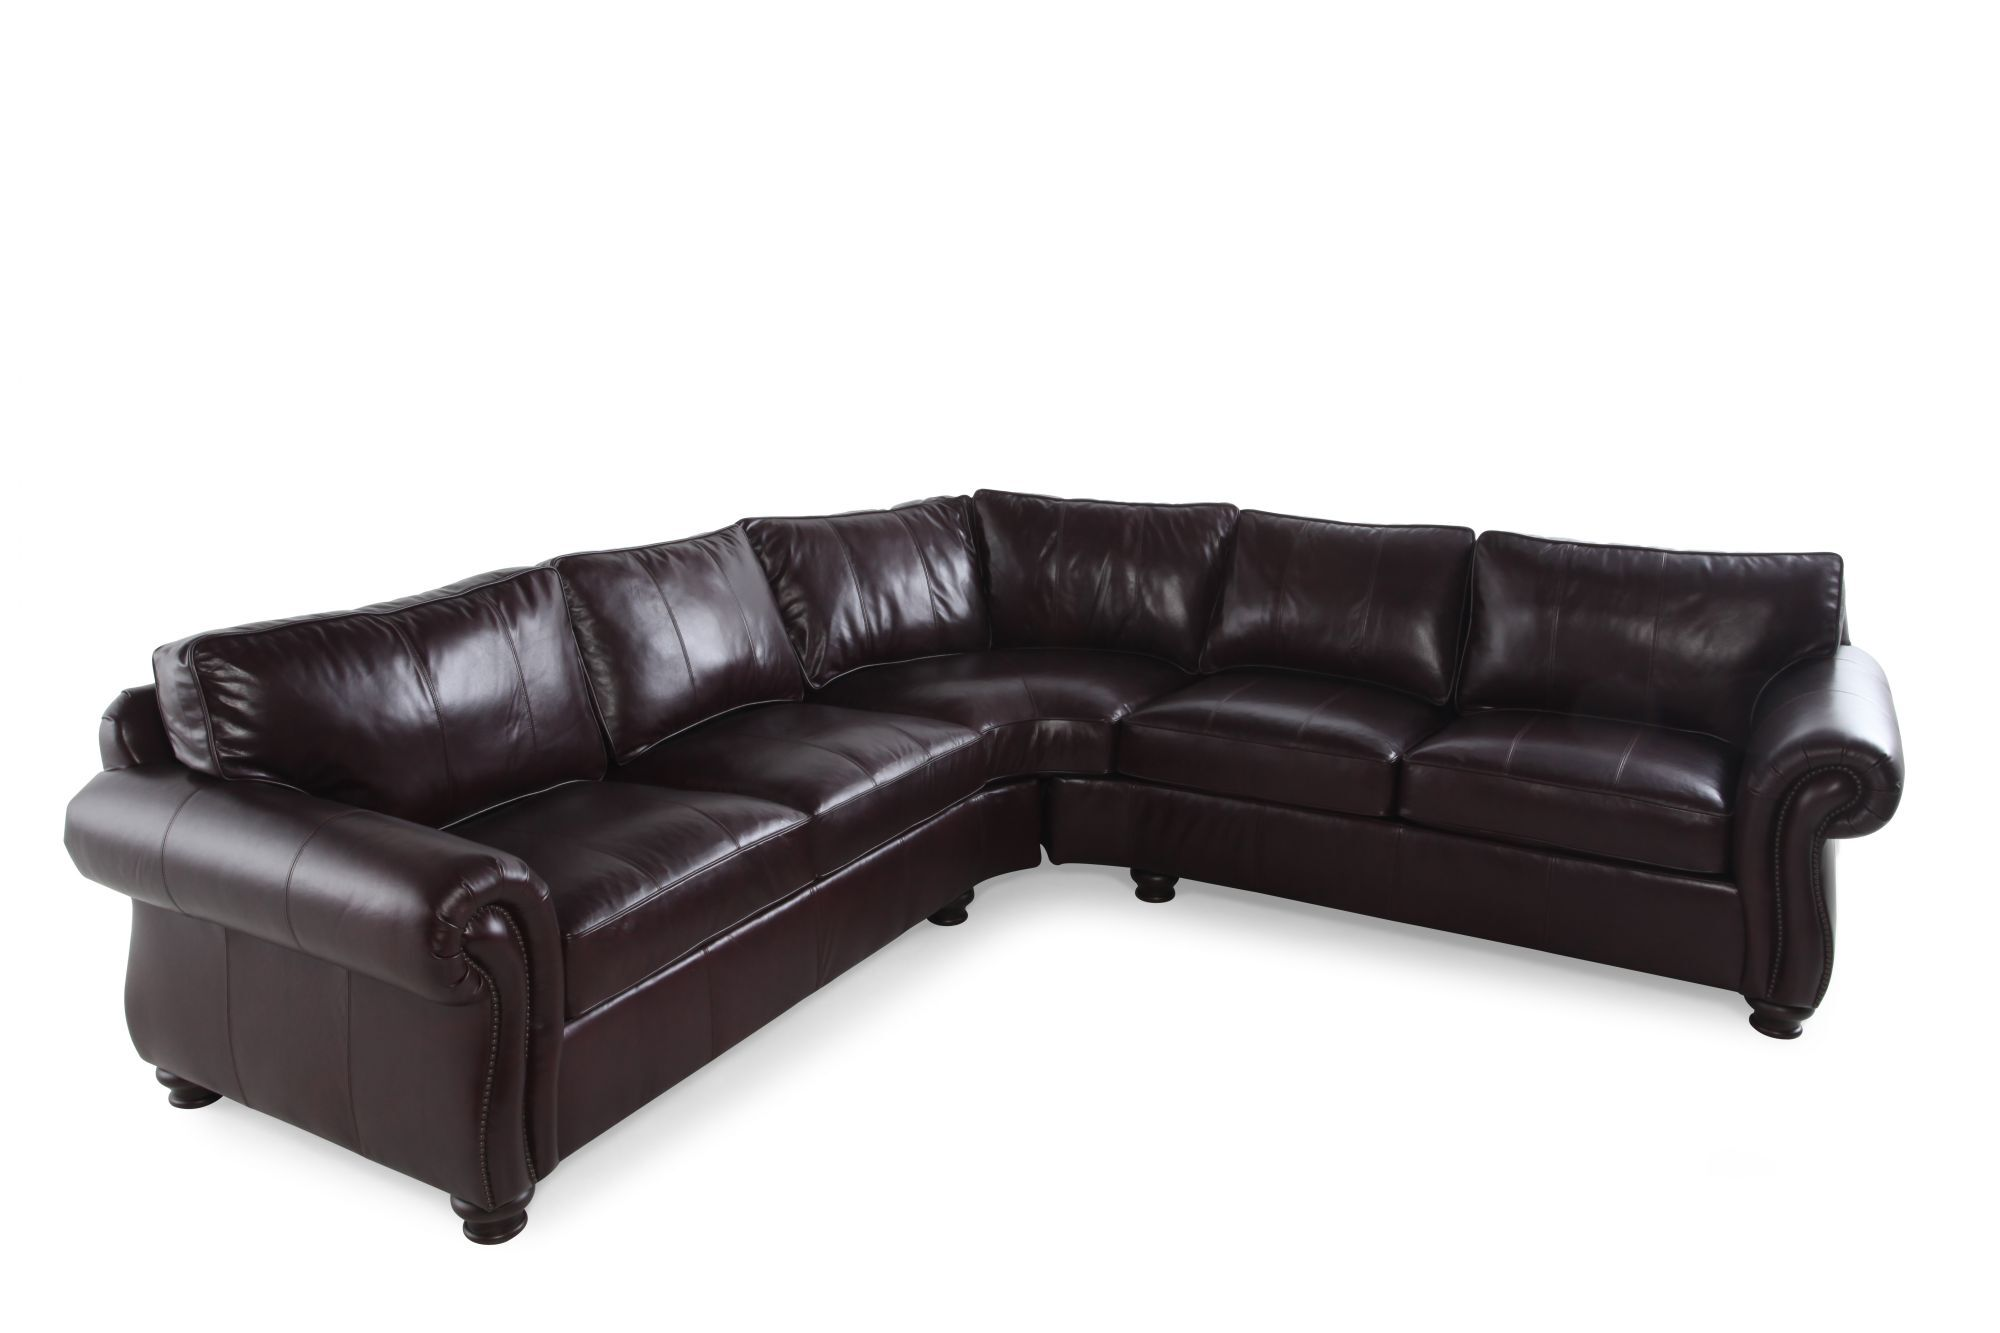 Bernhardt Van Gogh Two-Piece Sectional  sc 1 st  Mathis Brothers : bernhardt van gogh leather sectional - Sectionals, Sofas & Couches